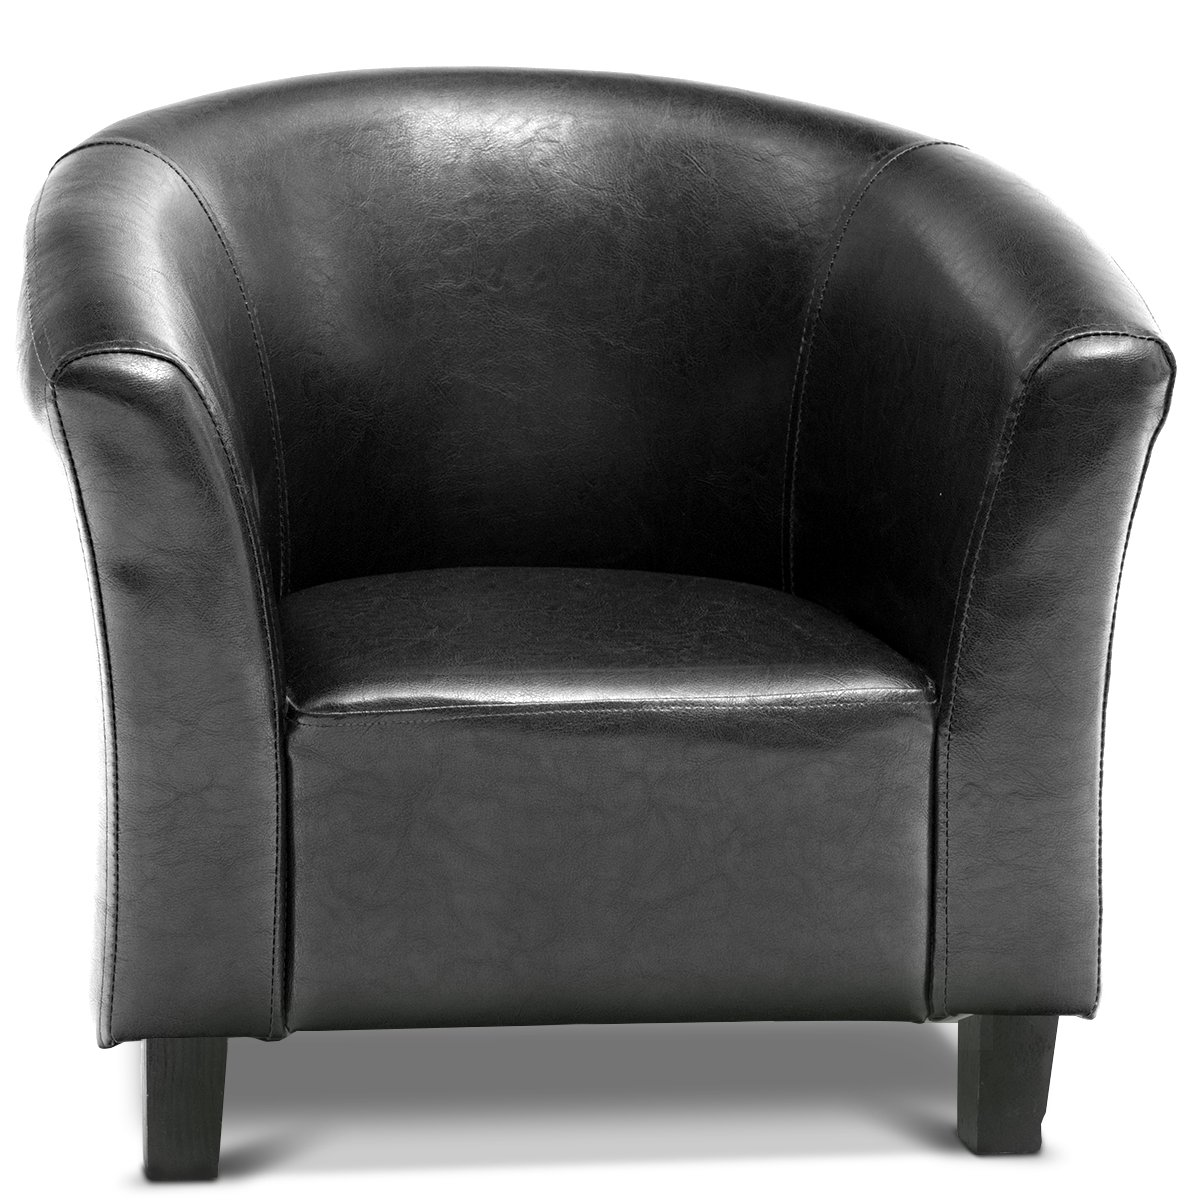 Costzon Kids Sofa Tub Chair Couch Children Living Room Toddler Furniture (PU Leather, Black) by Costzon (Image #7)